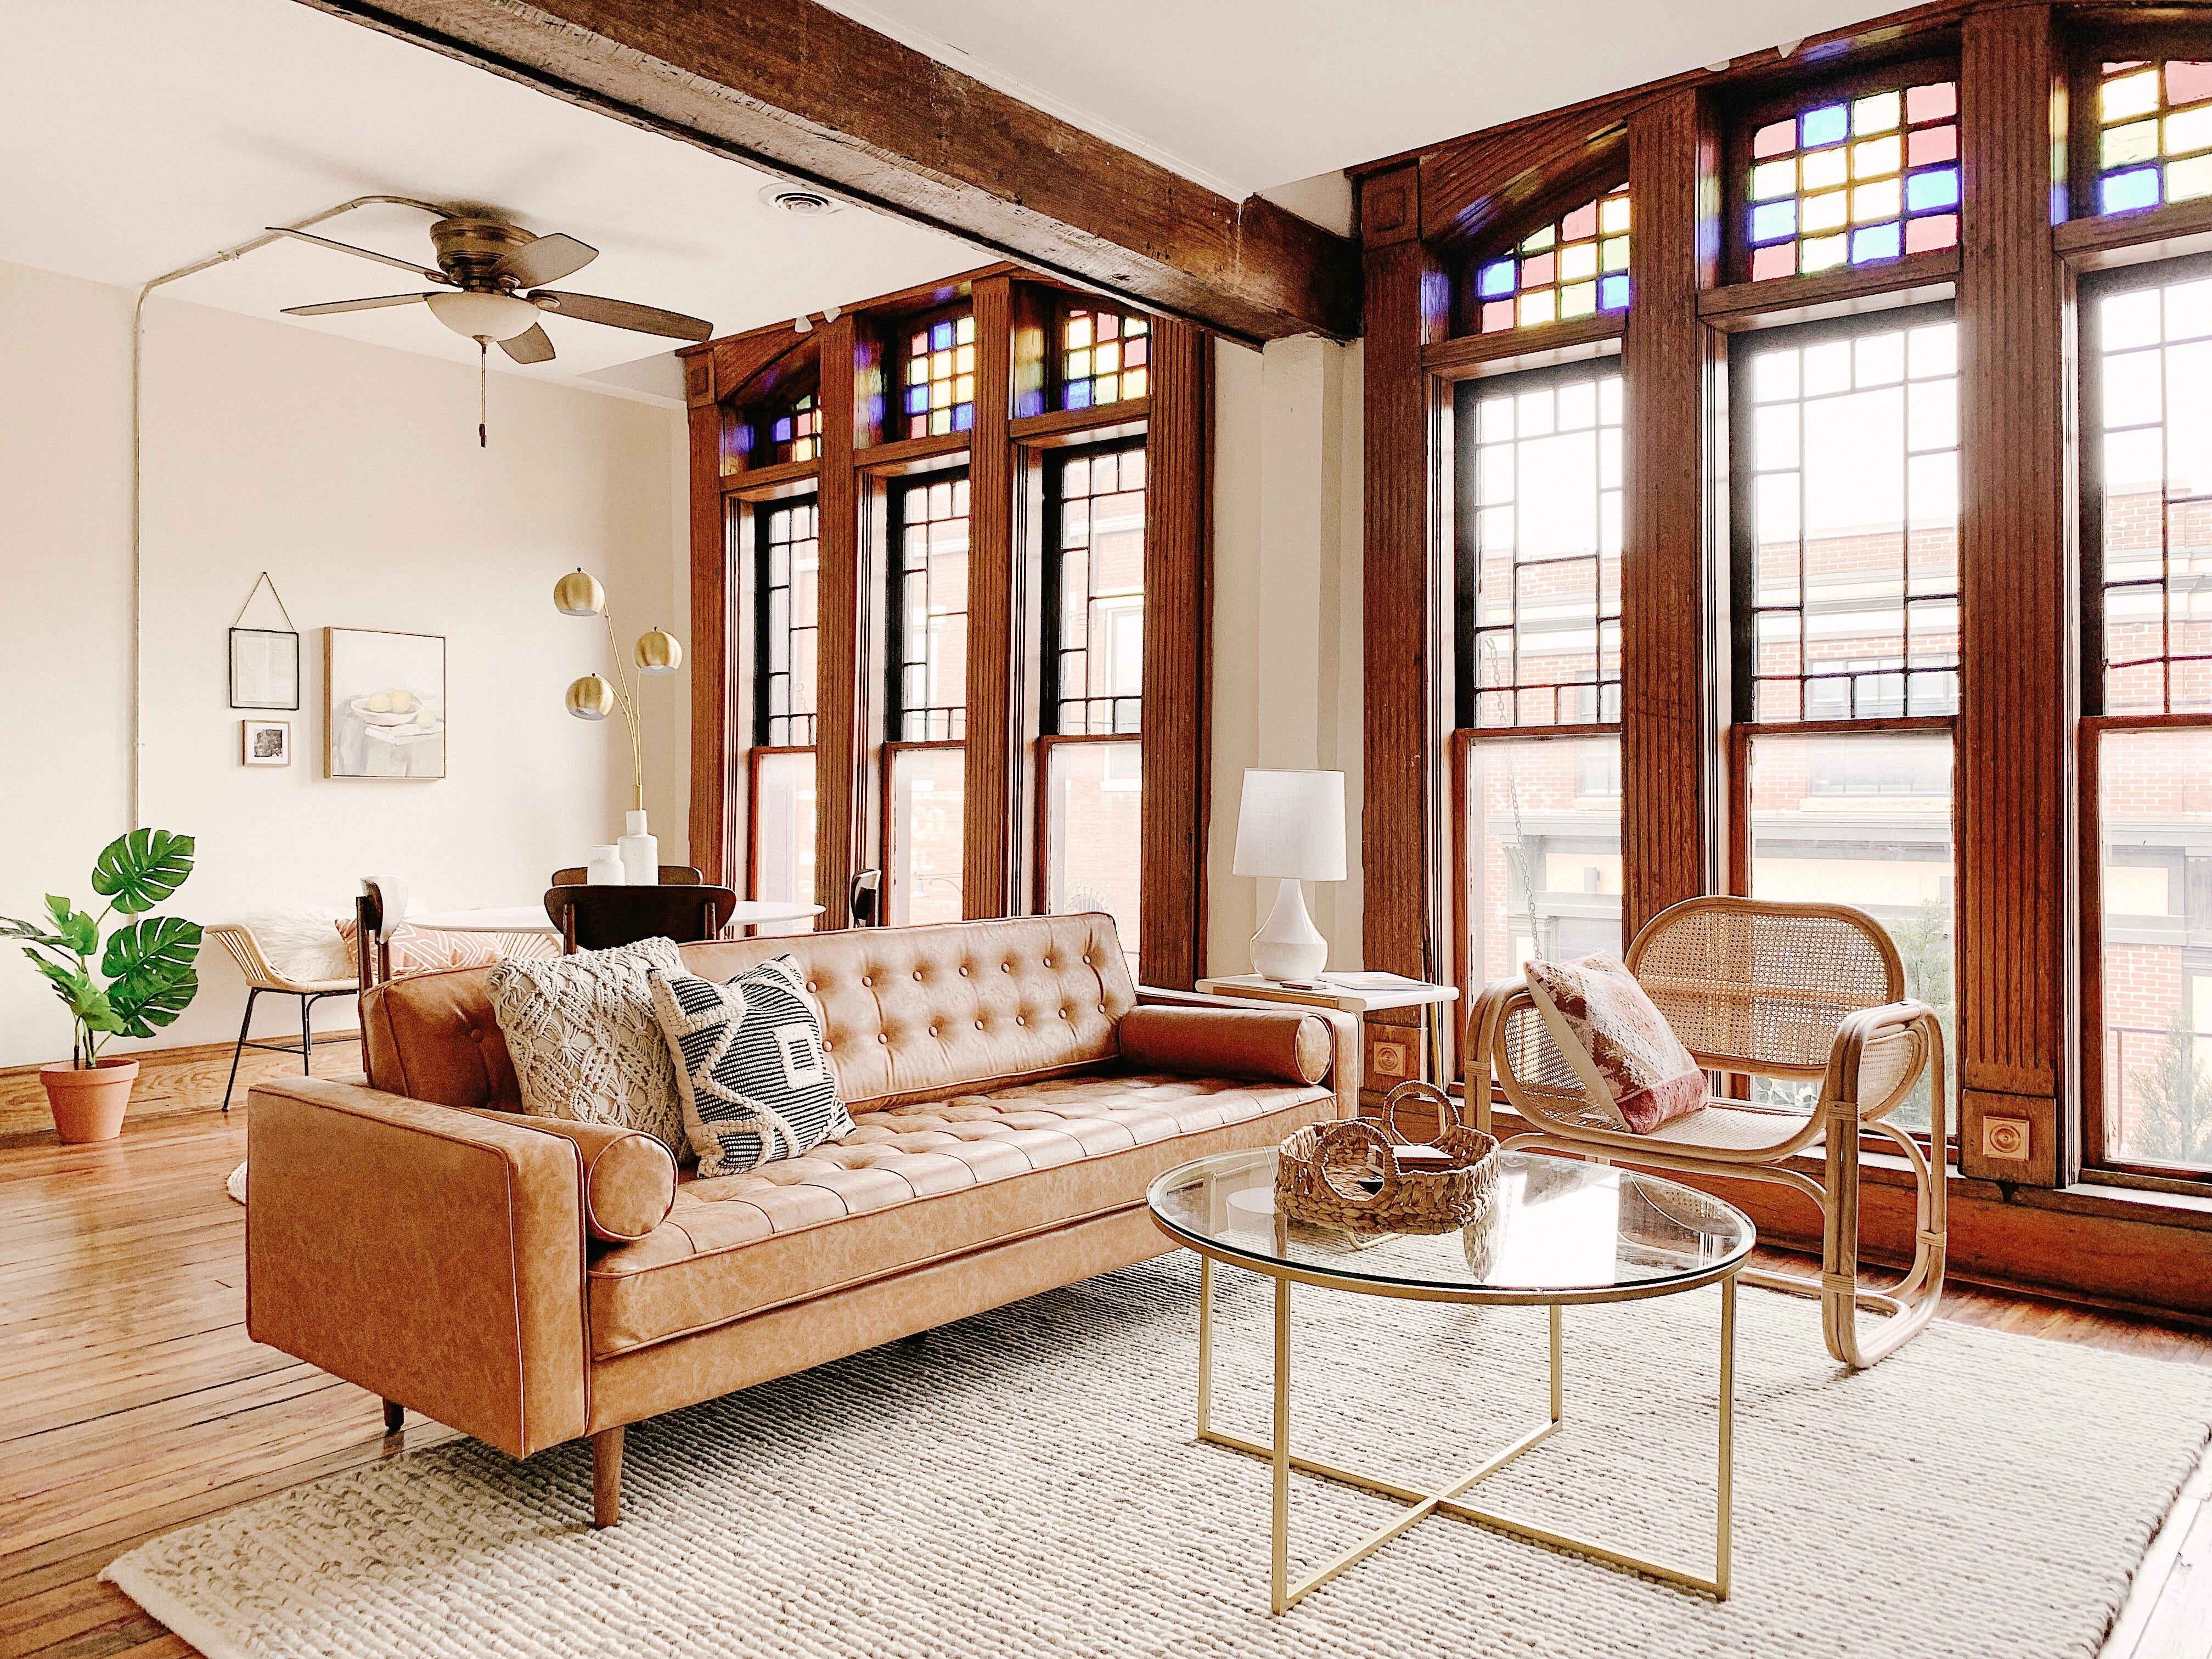 An East Jackson Avenue loft for rent on Airbnb. This Old City apartment is managed by Knox Staytion, a short-term rental company owned by Dylan and Suzanne Robinson.